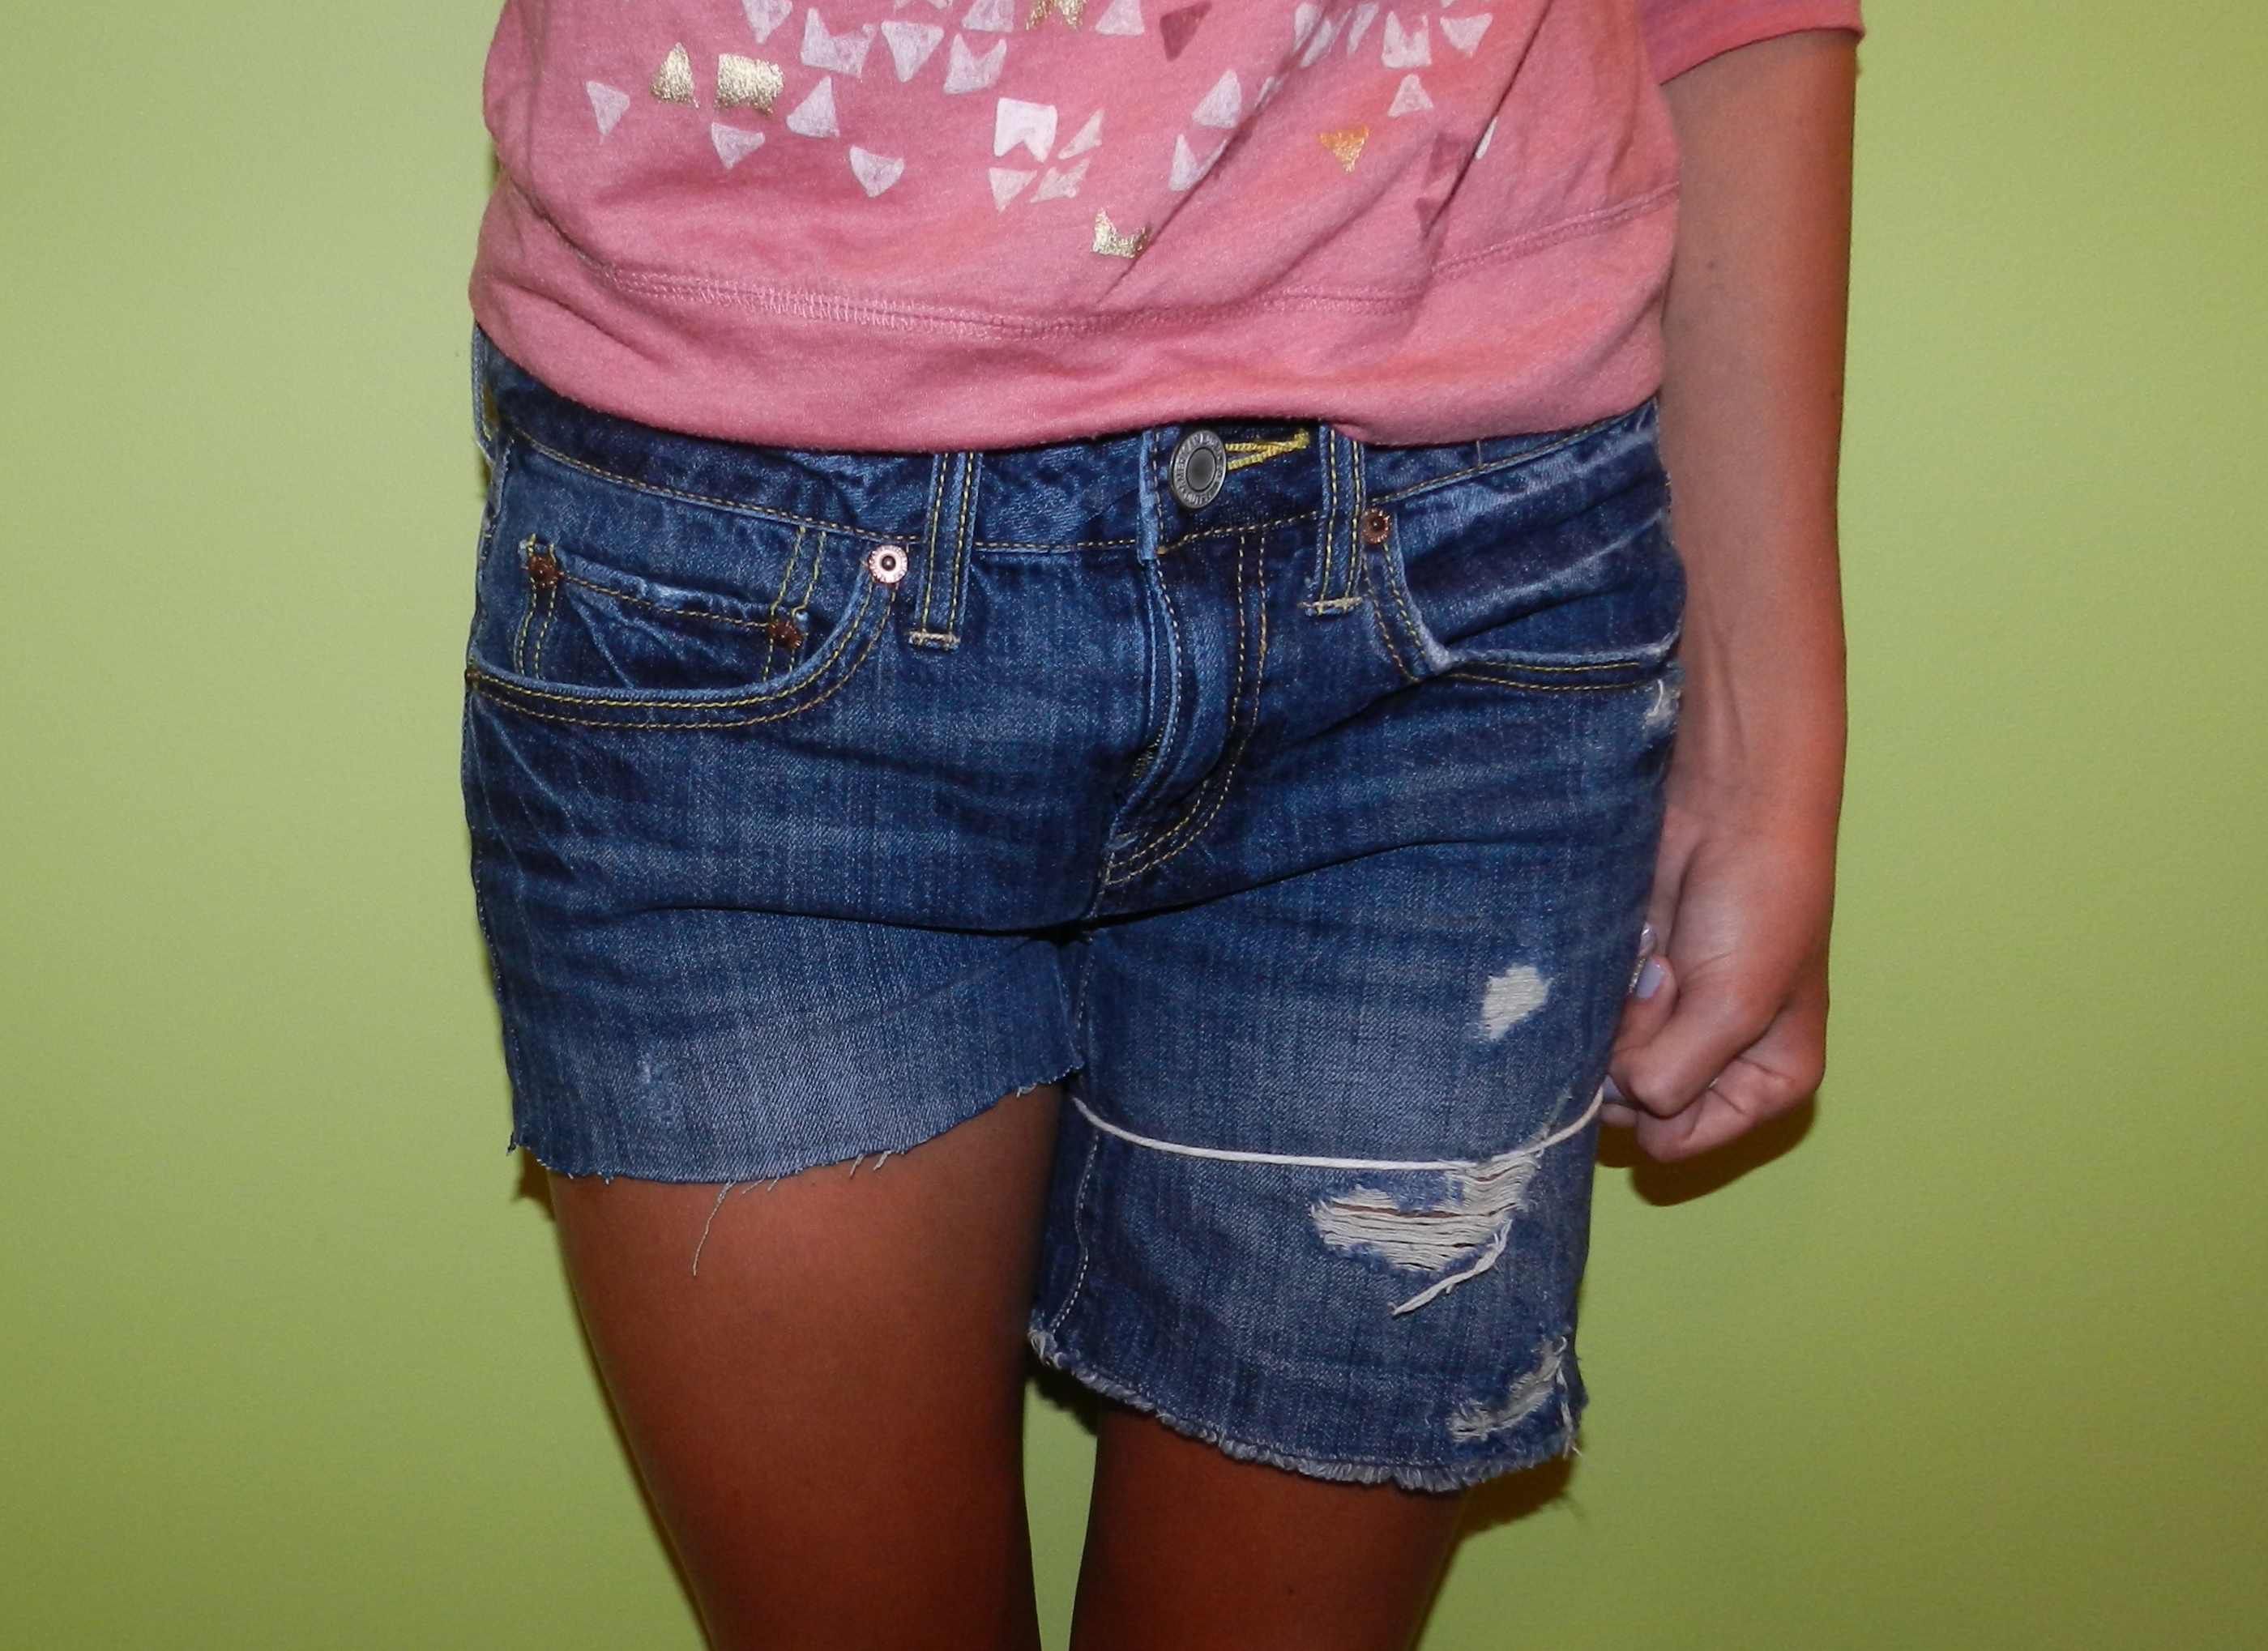 DIY_Lace_Shorts3